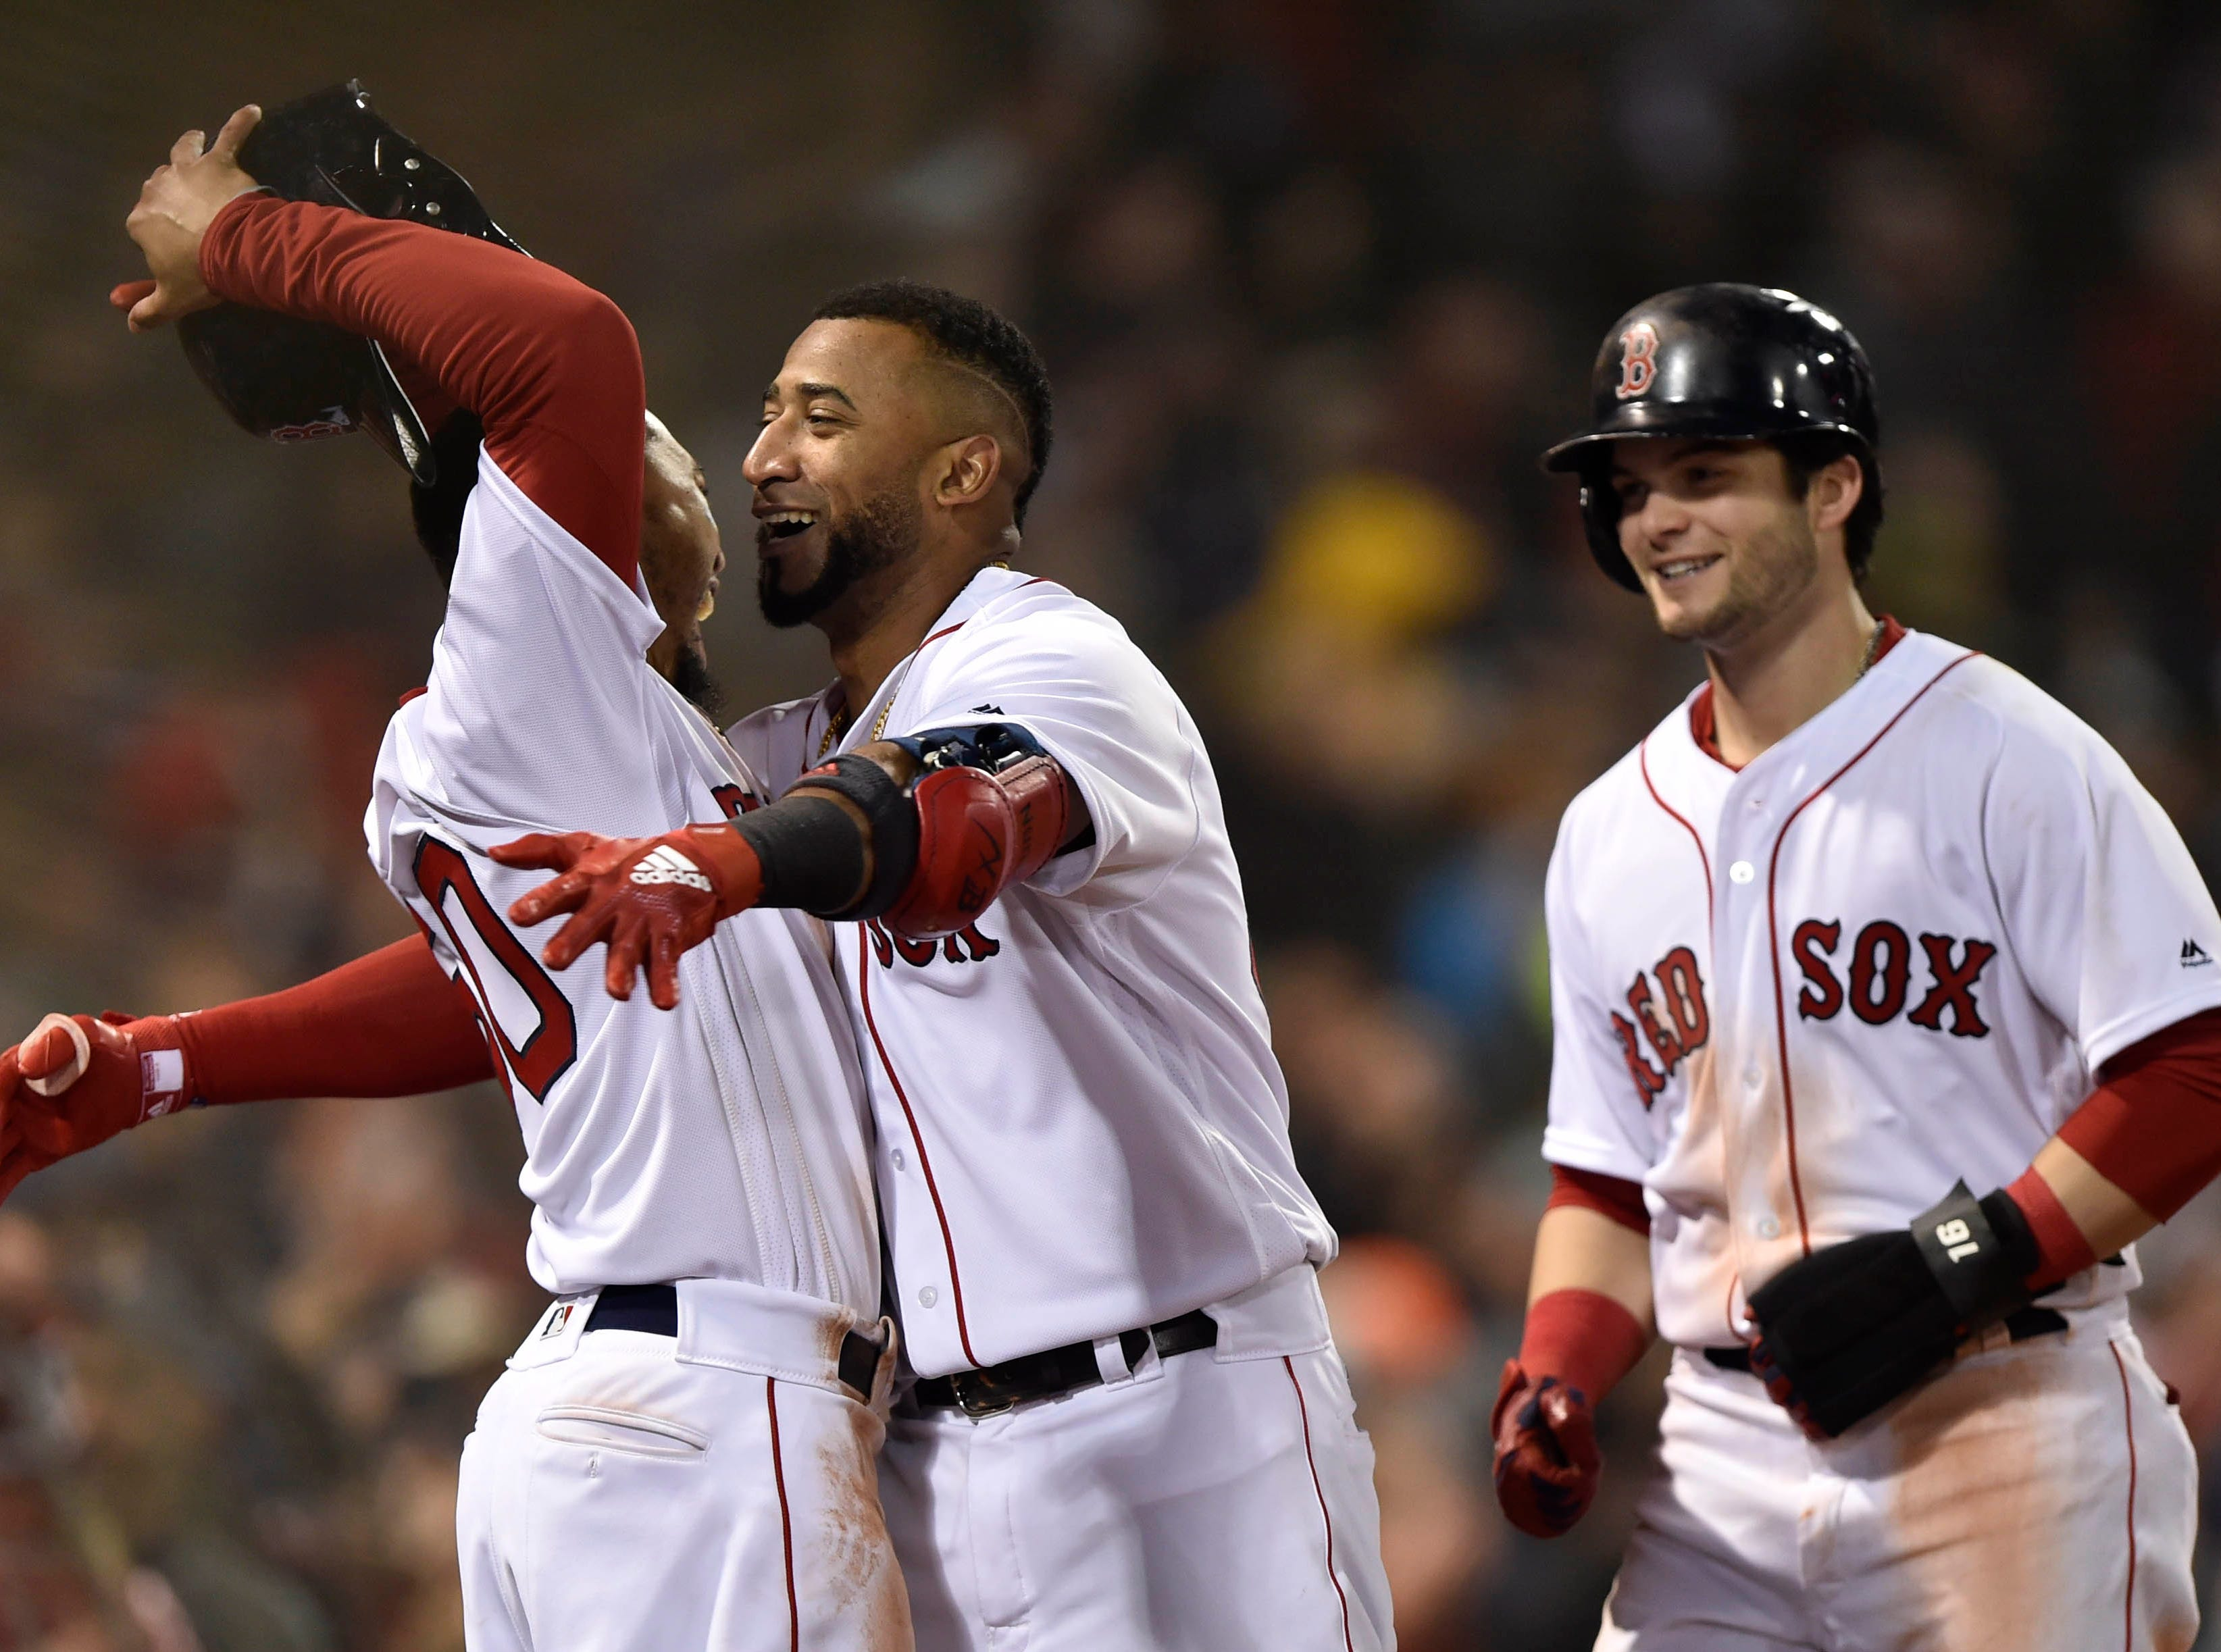 Game 1 at Fenway Park: Eduardo Nunez celebrates with teammates after his three-run homer in the seventh.